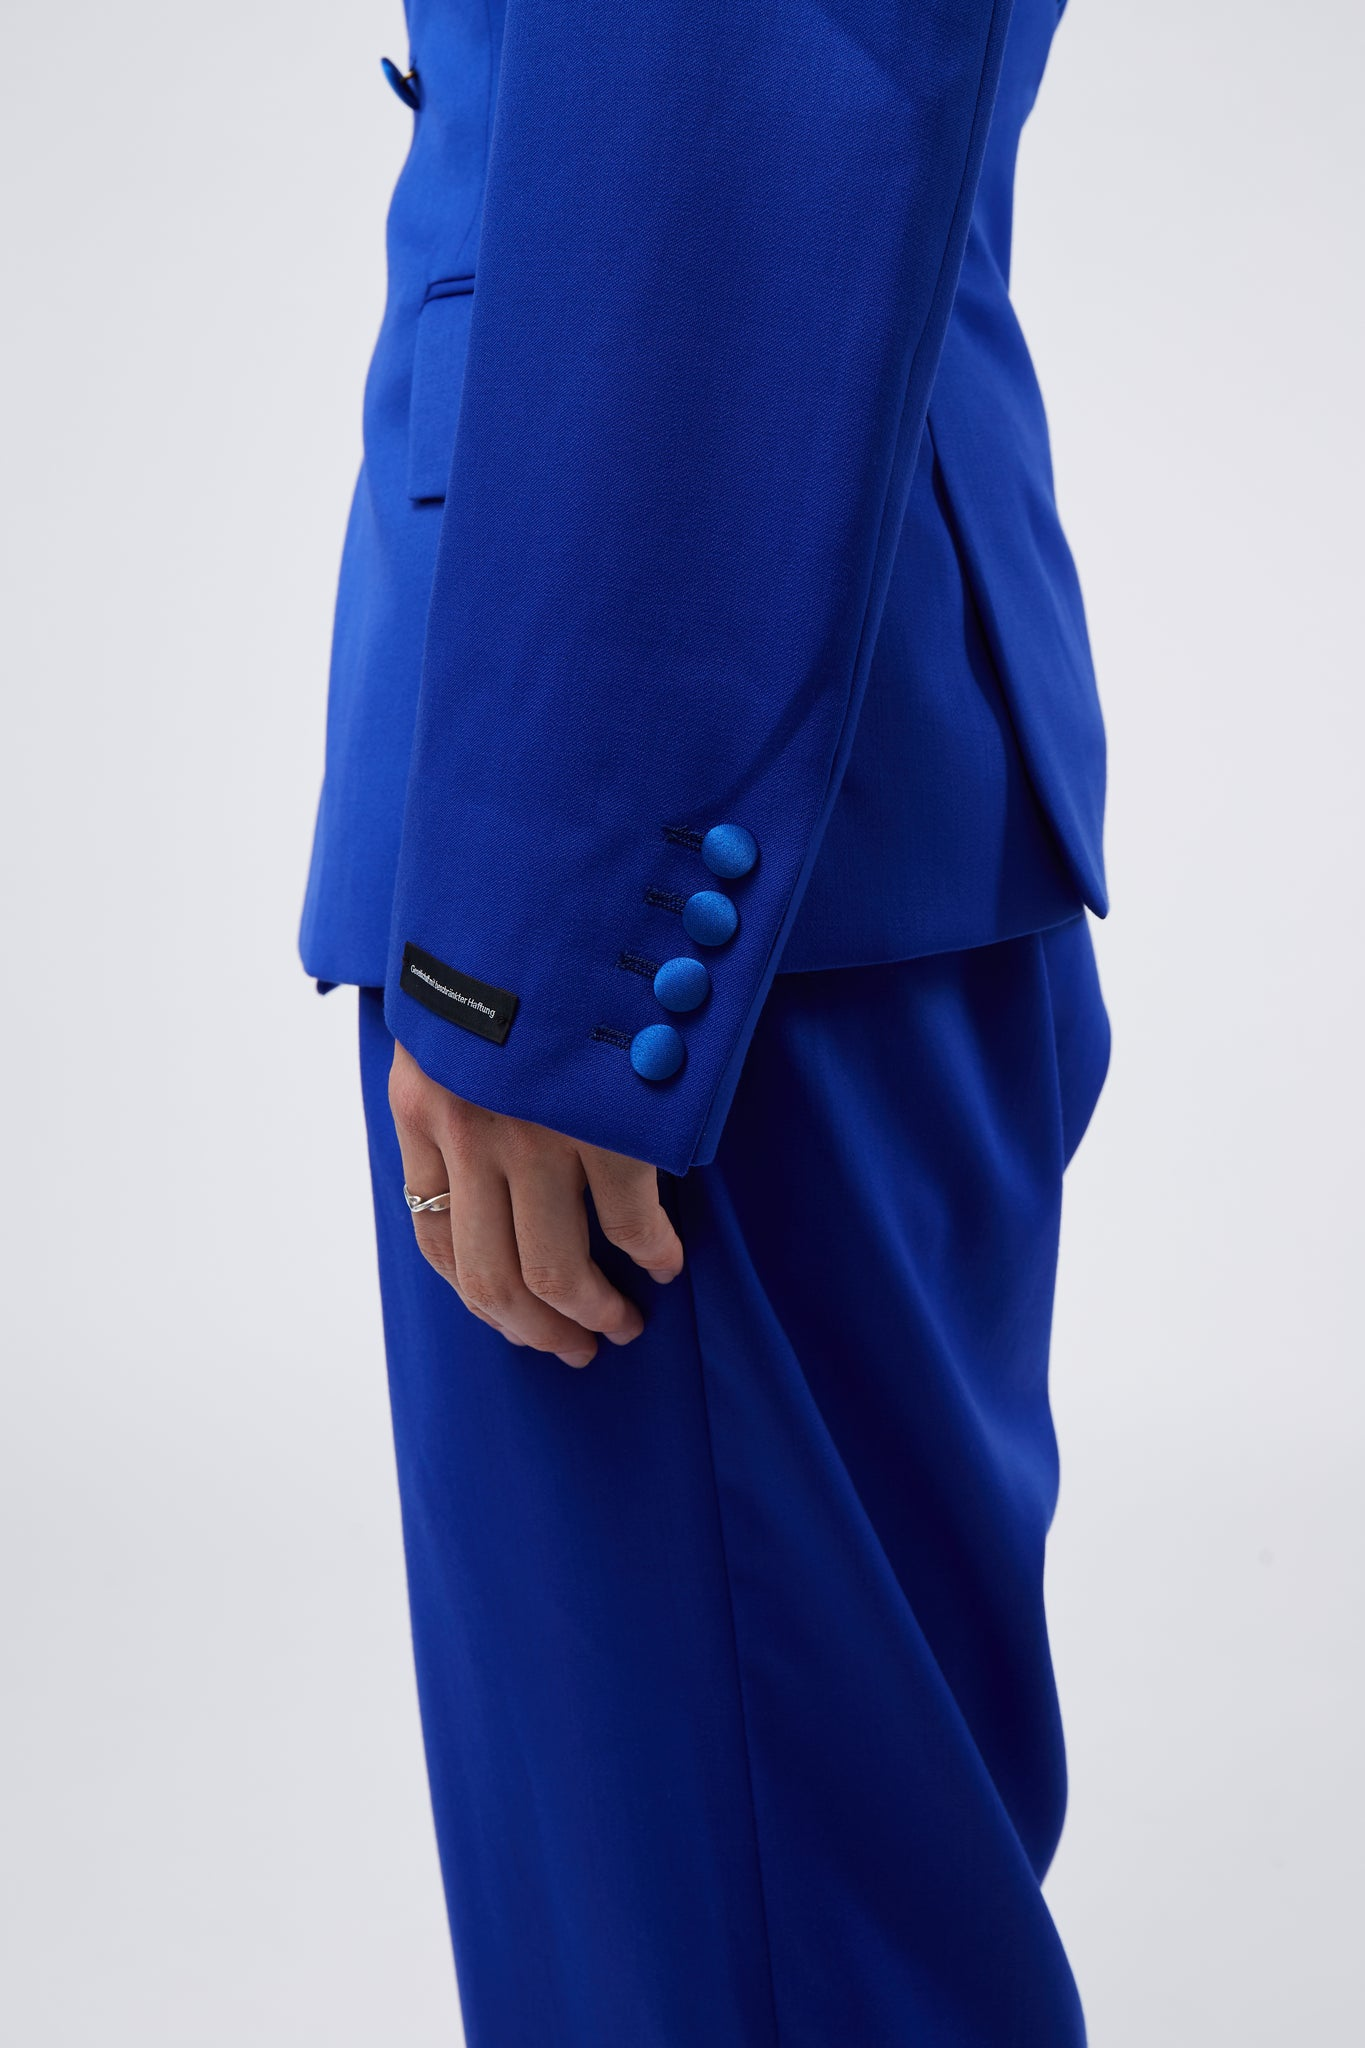 Thulium Tailored Jacket W Extended Top Lapel Blue